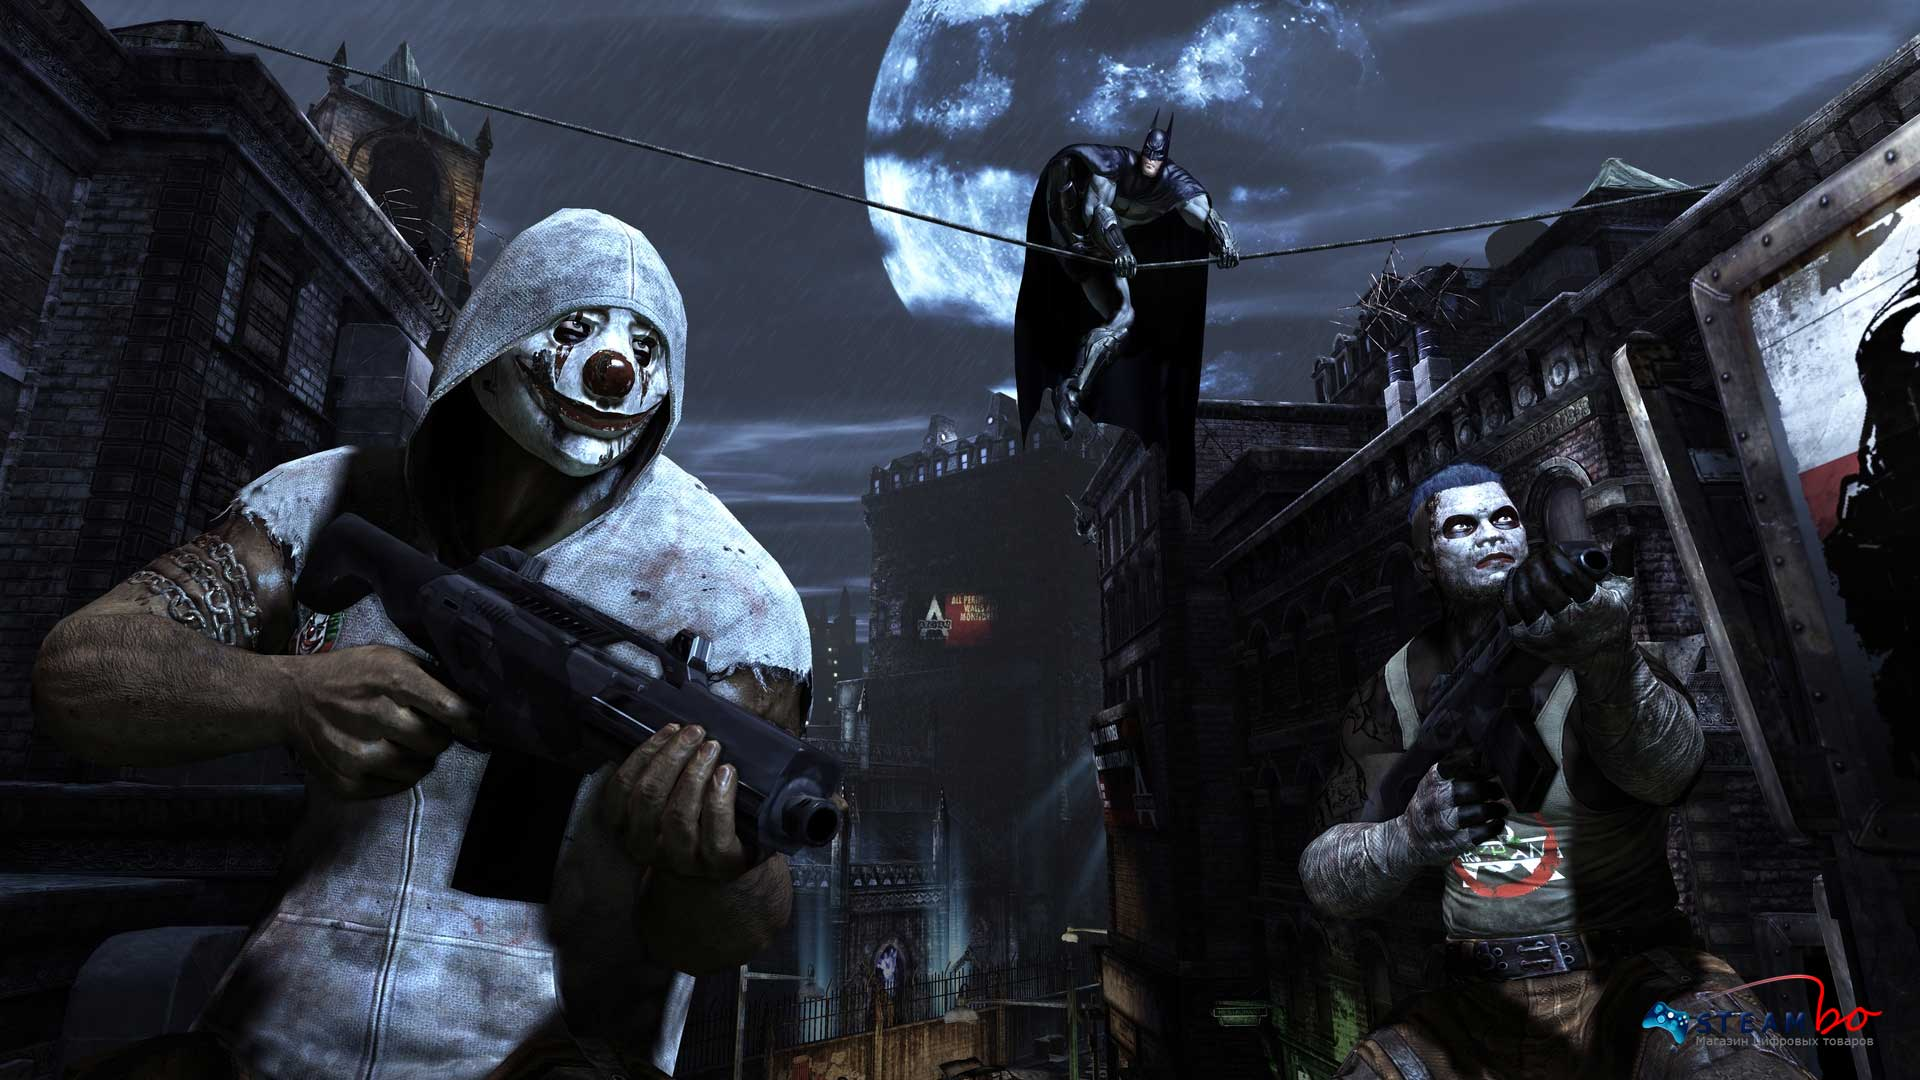 Batman Arkham City GOTY Region Free (Steam Gift/Key)